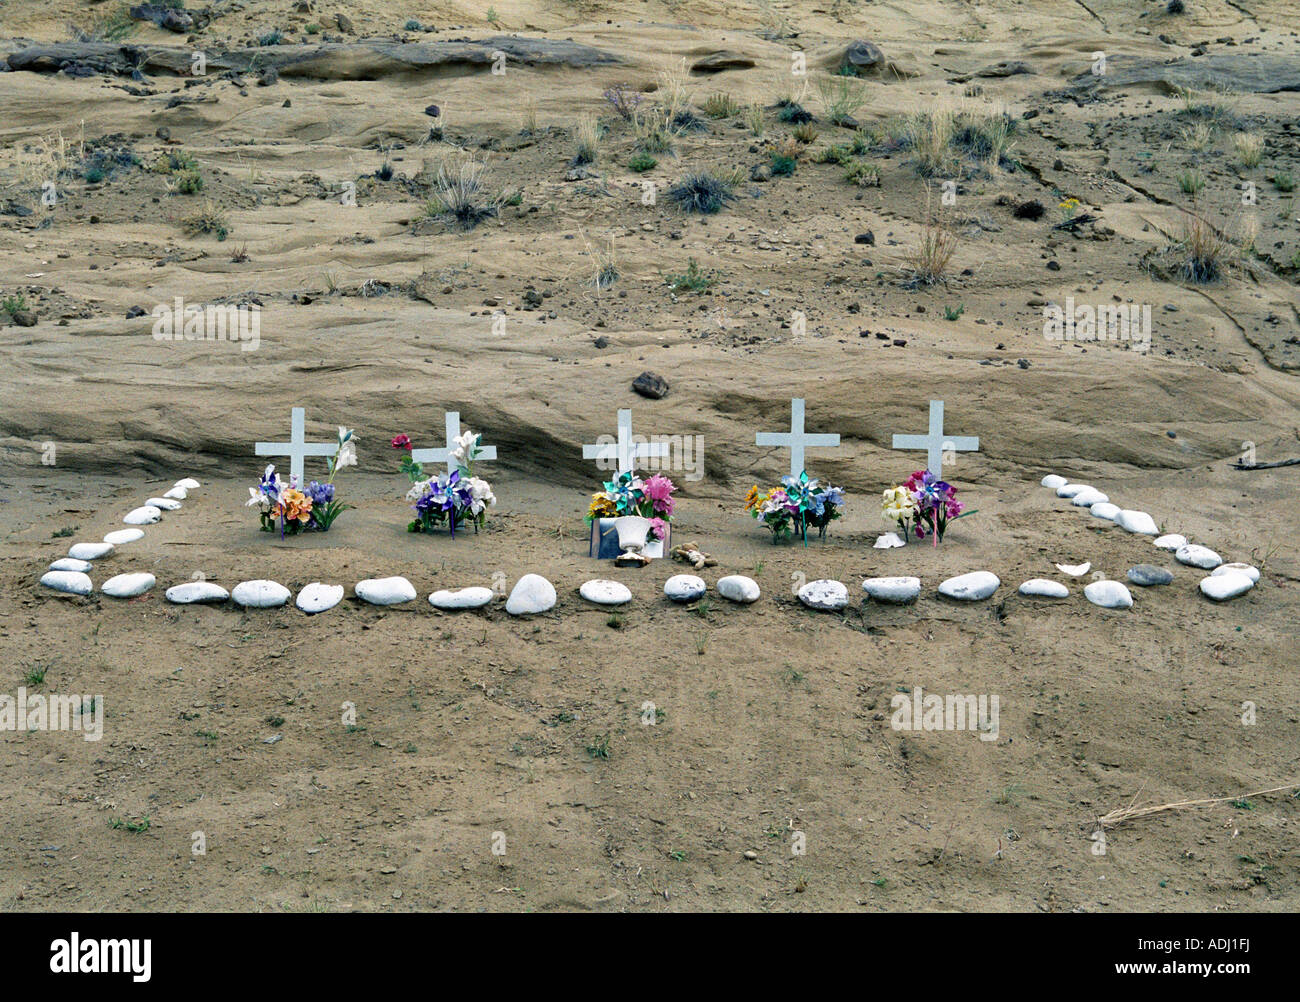 Road side memorial for a family killed in a car accident in northern New Mexico USA - Stock Image